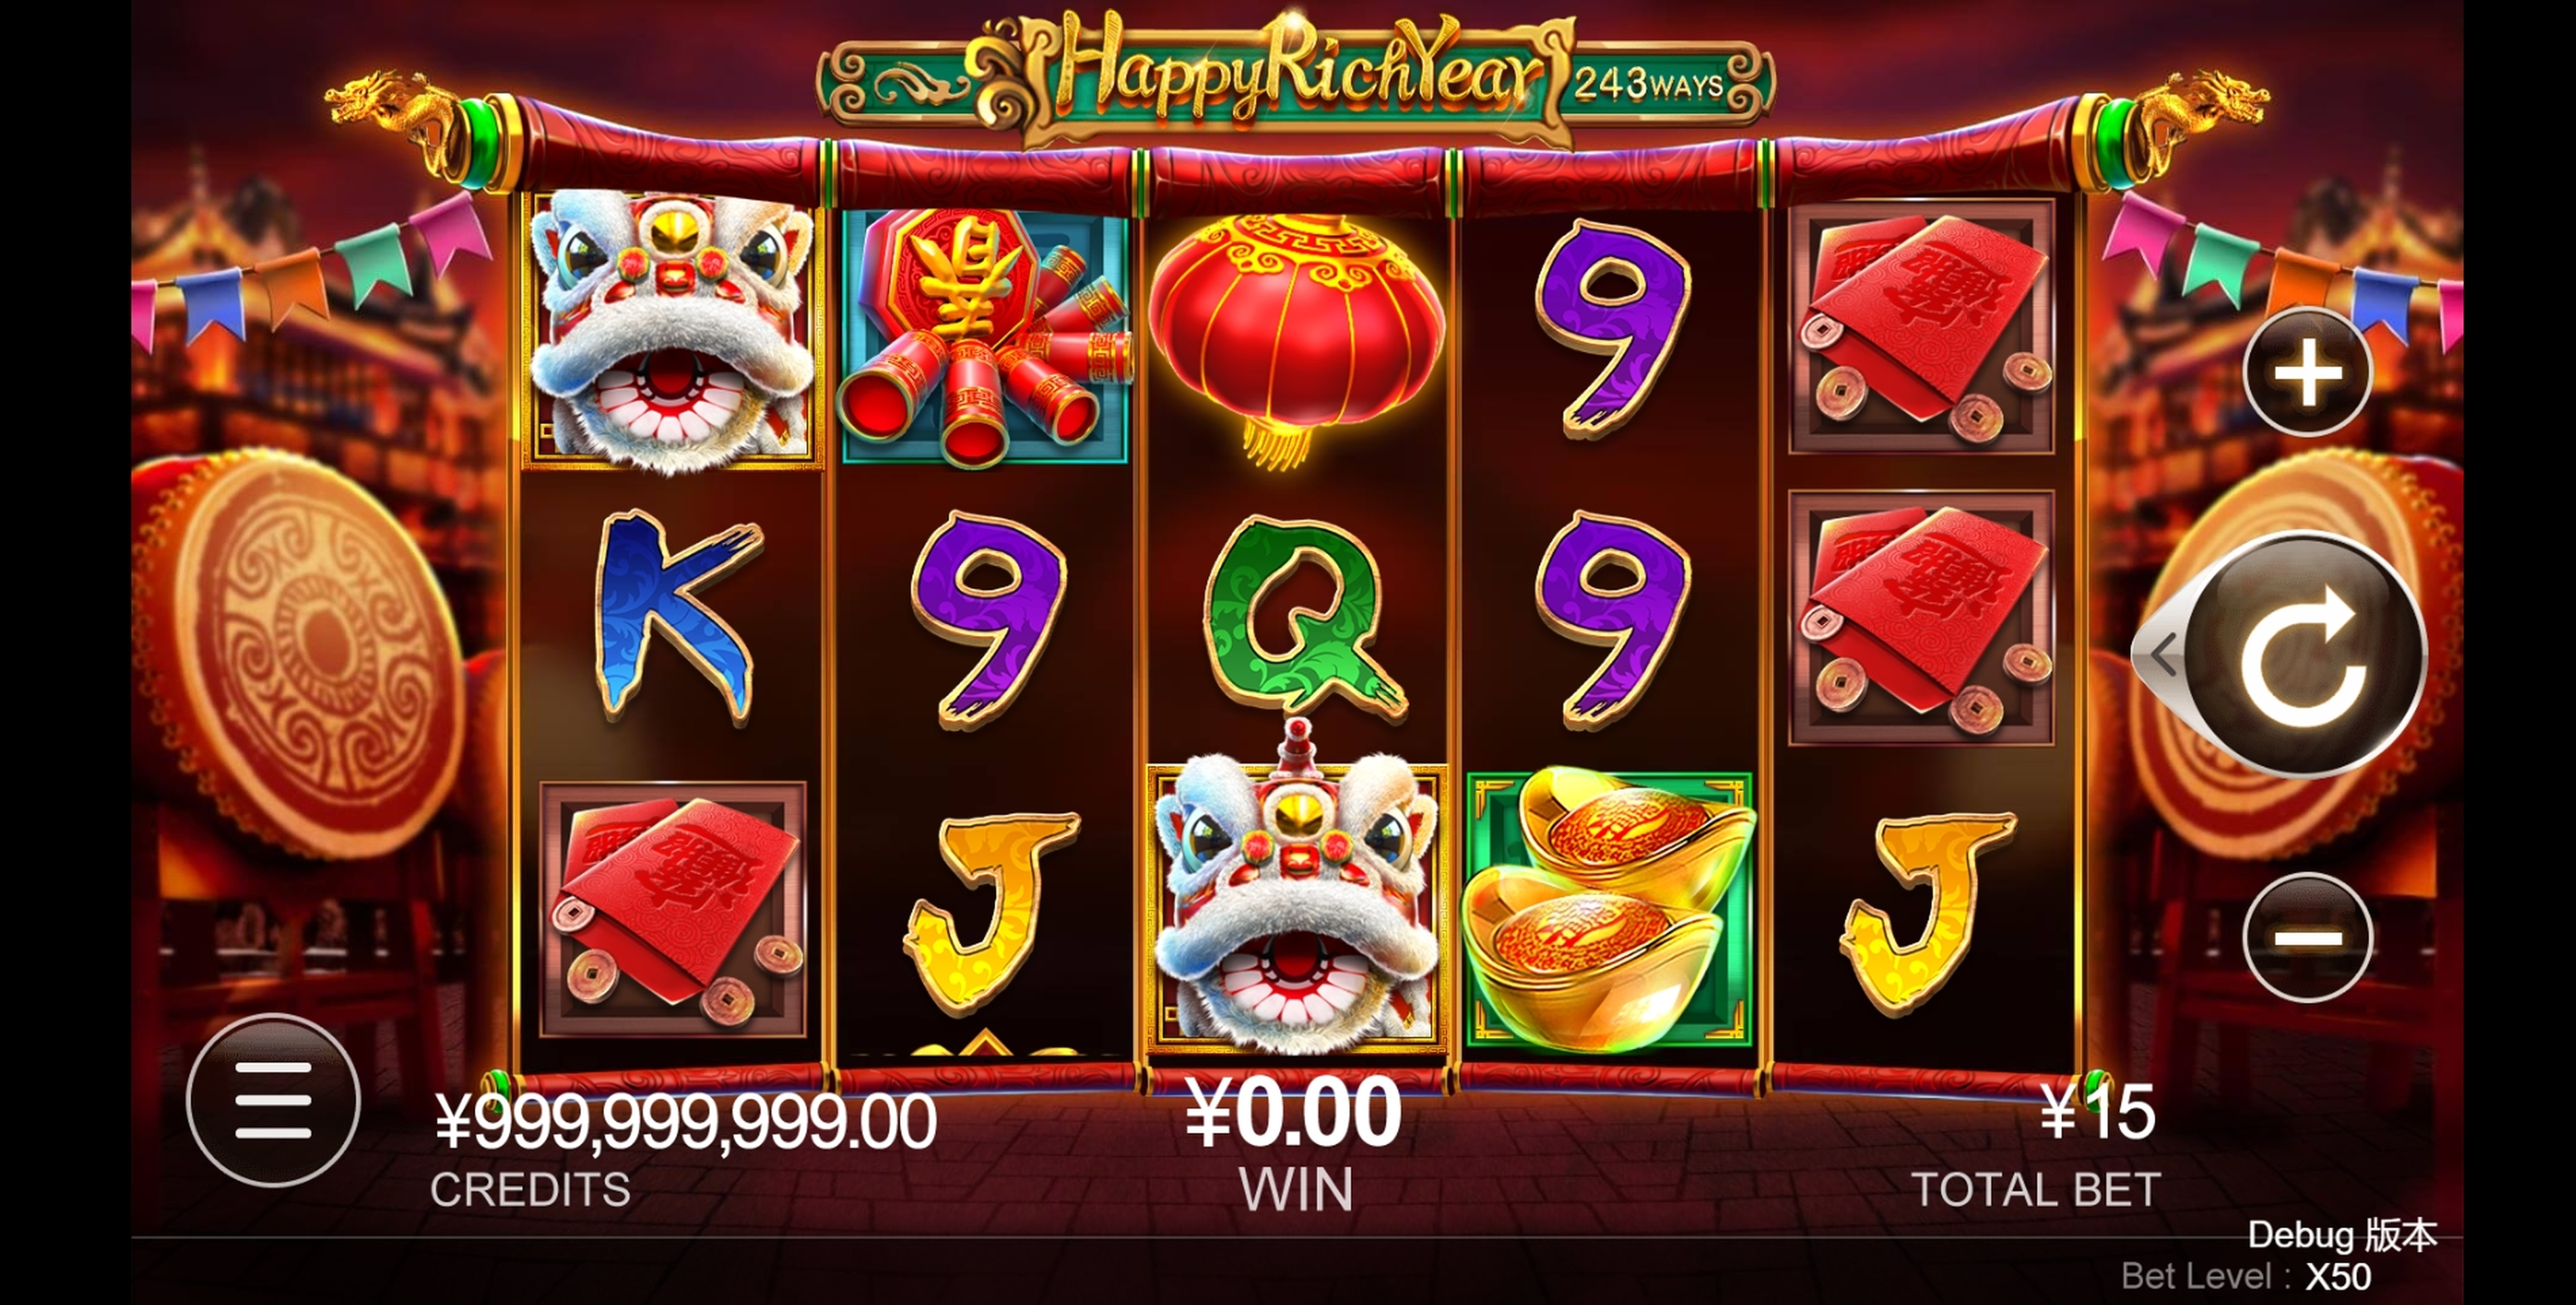 Reels in Happy Rich Year Slot Game by CQ9Gaming